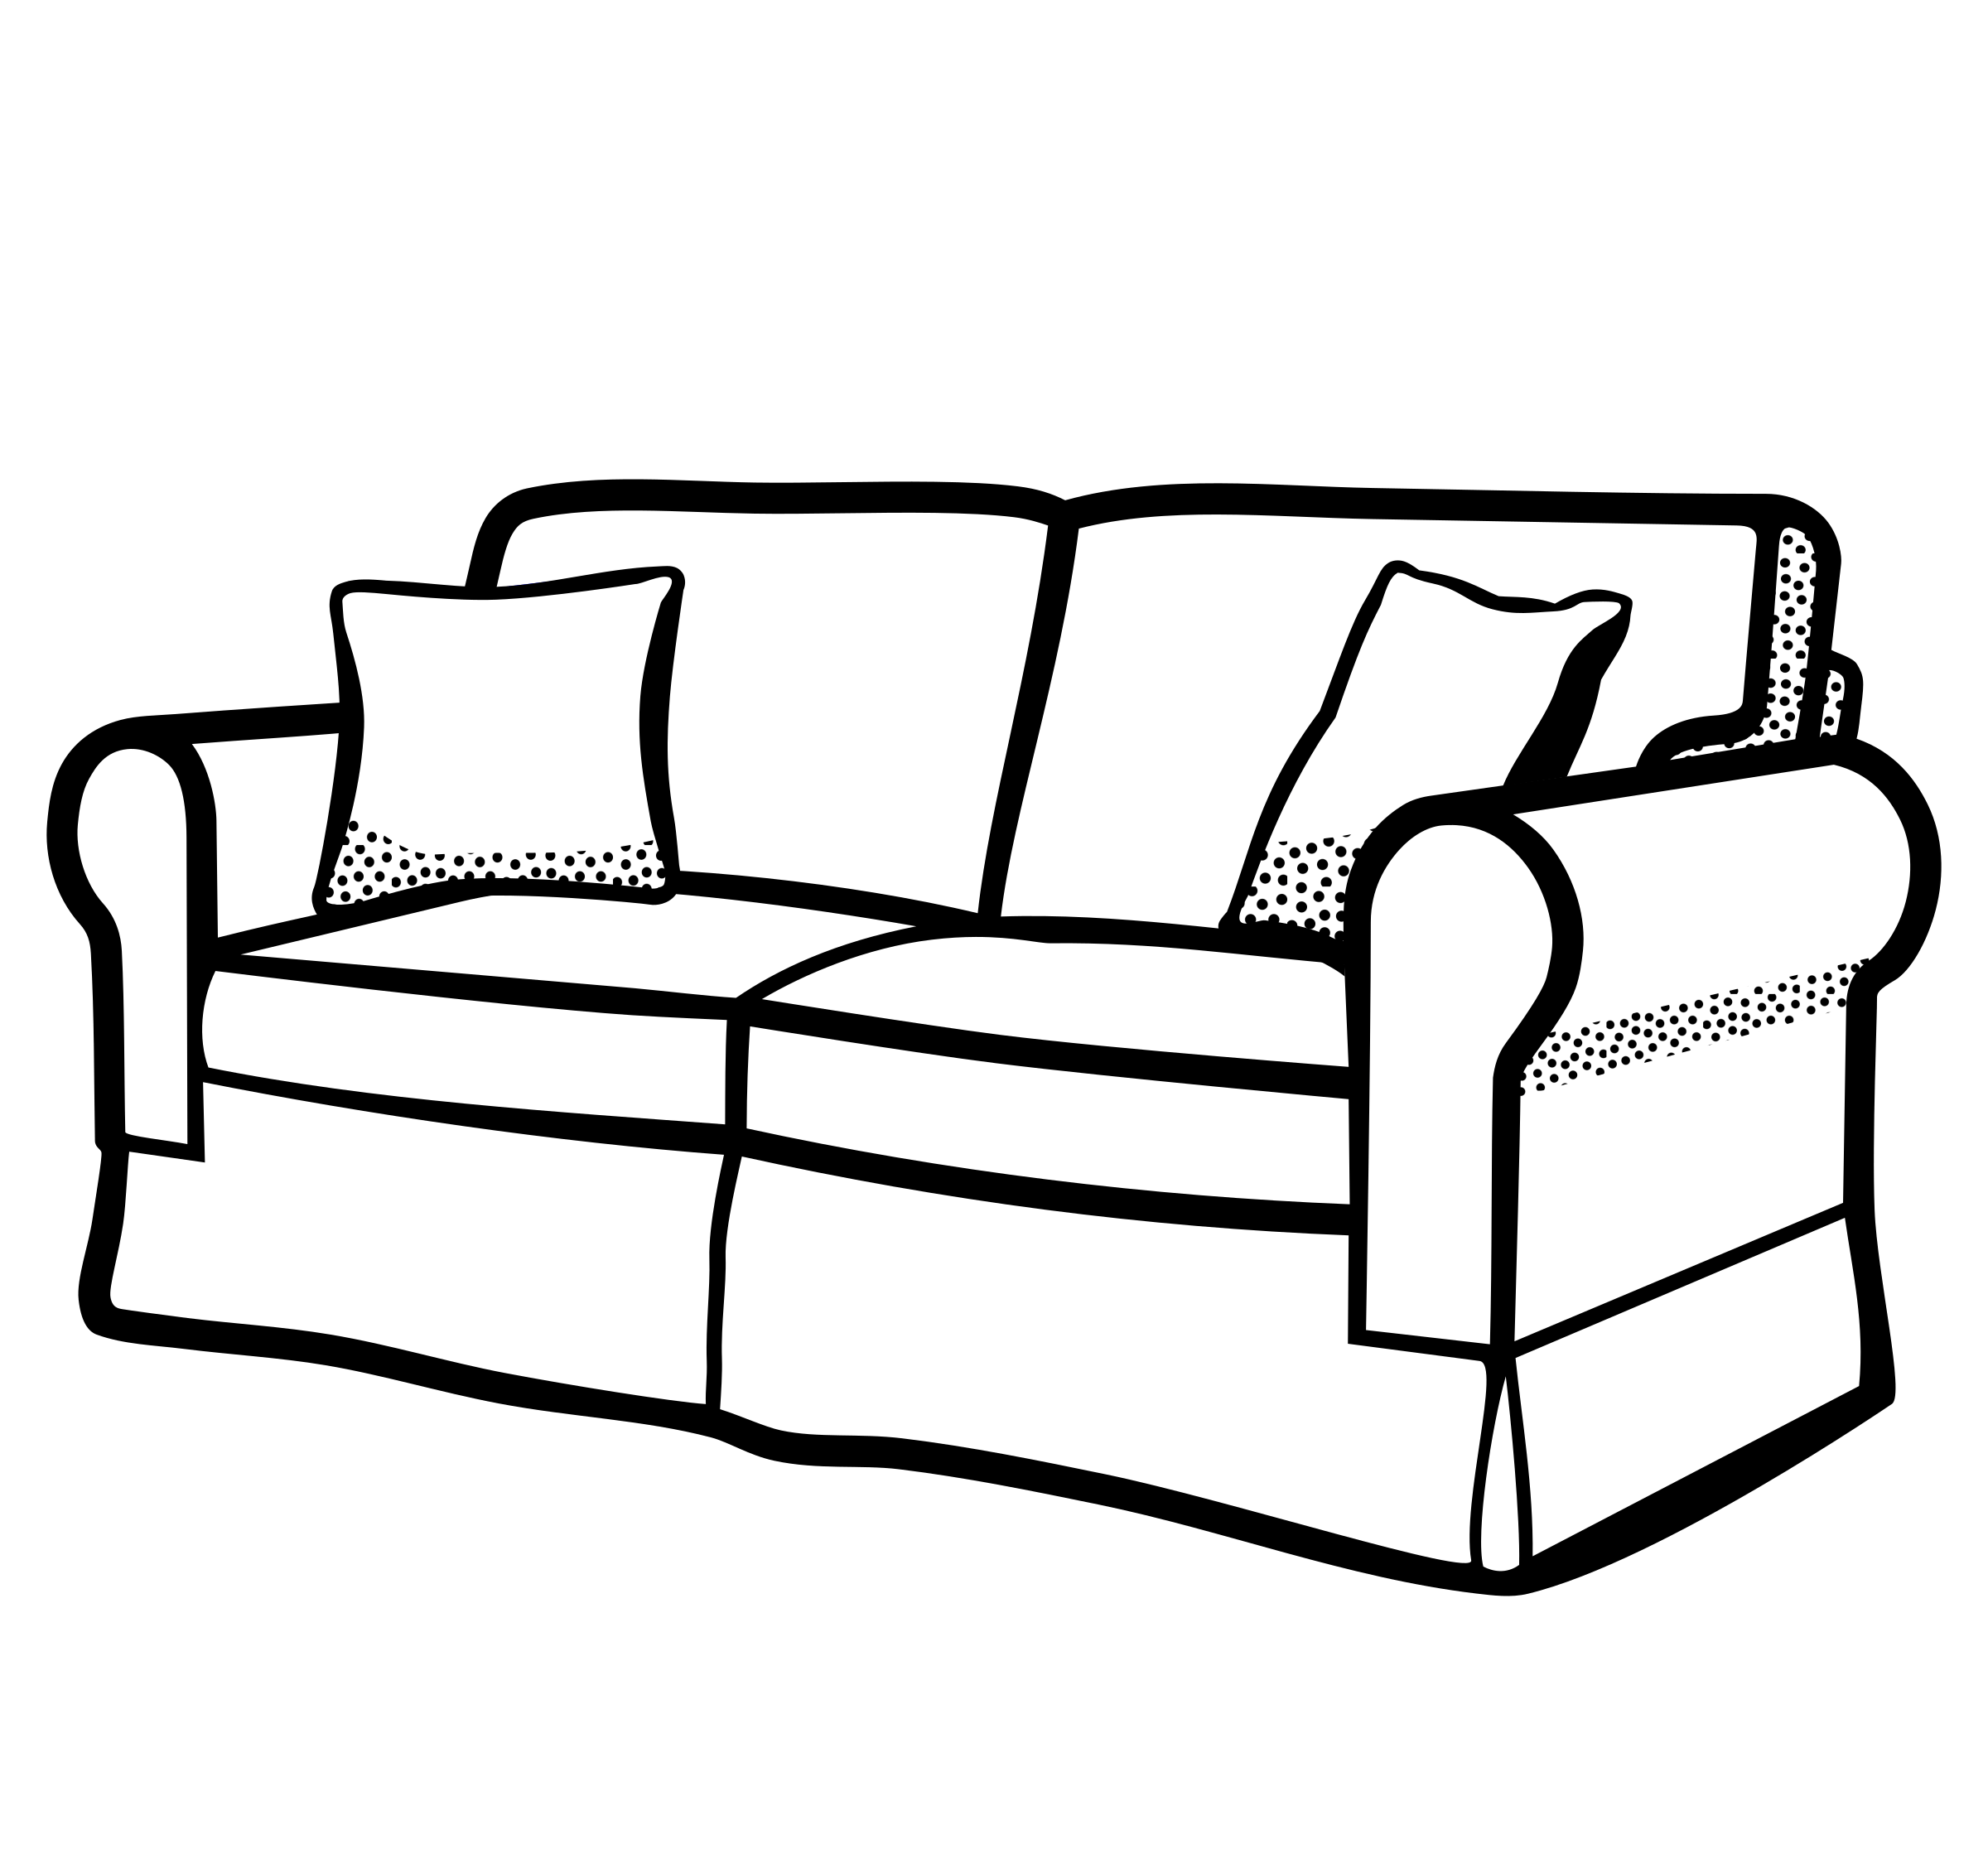 Old couch clipart graphic black and white download Couch clipart old couch, Couch old couch Transparent FREE for ... graphic black and white download